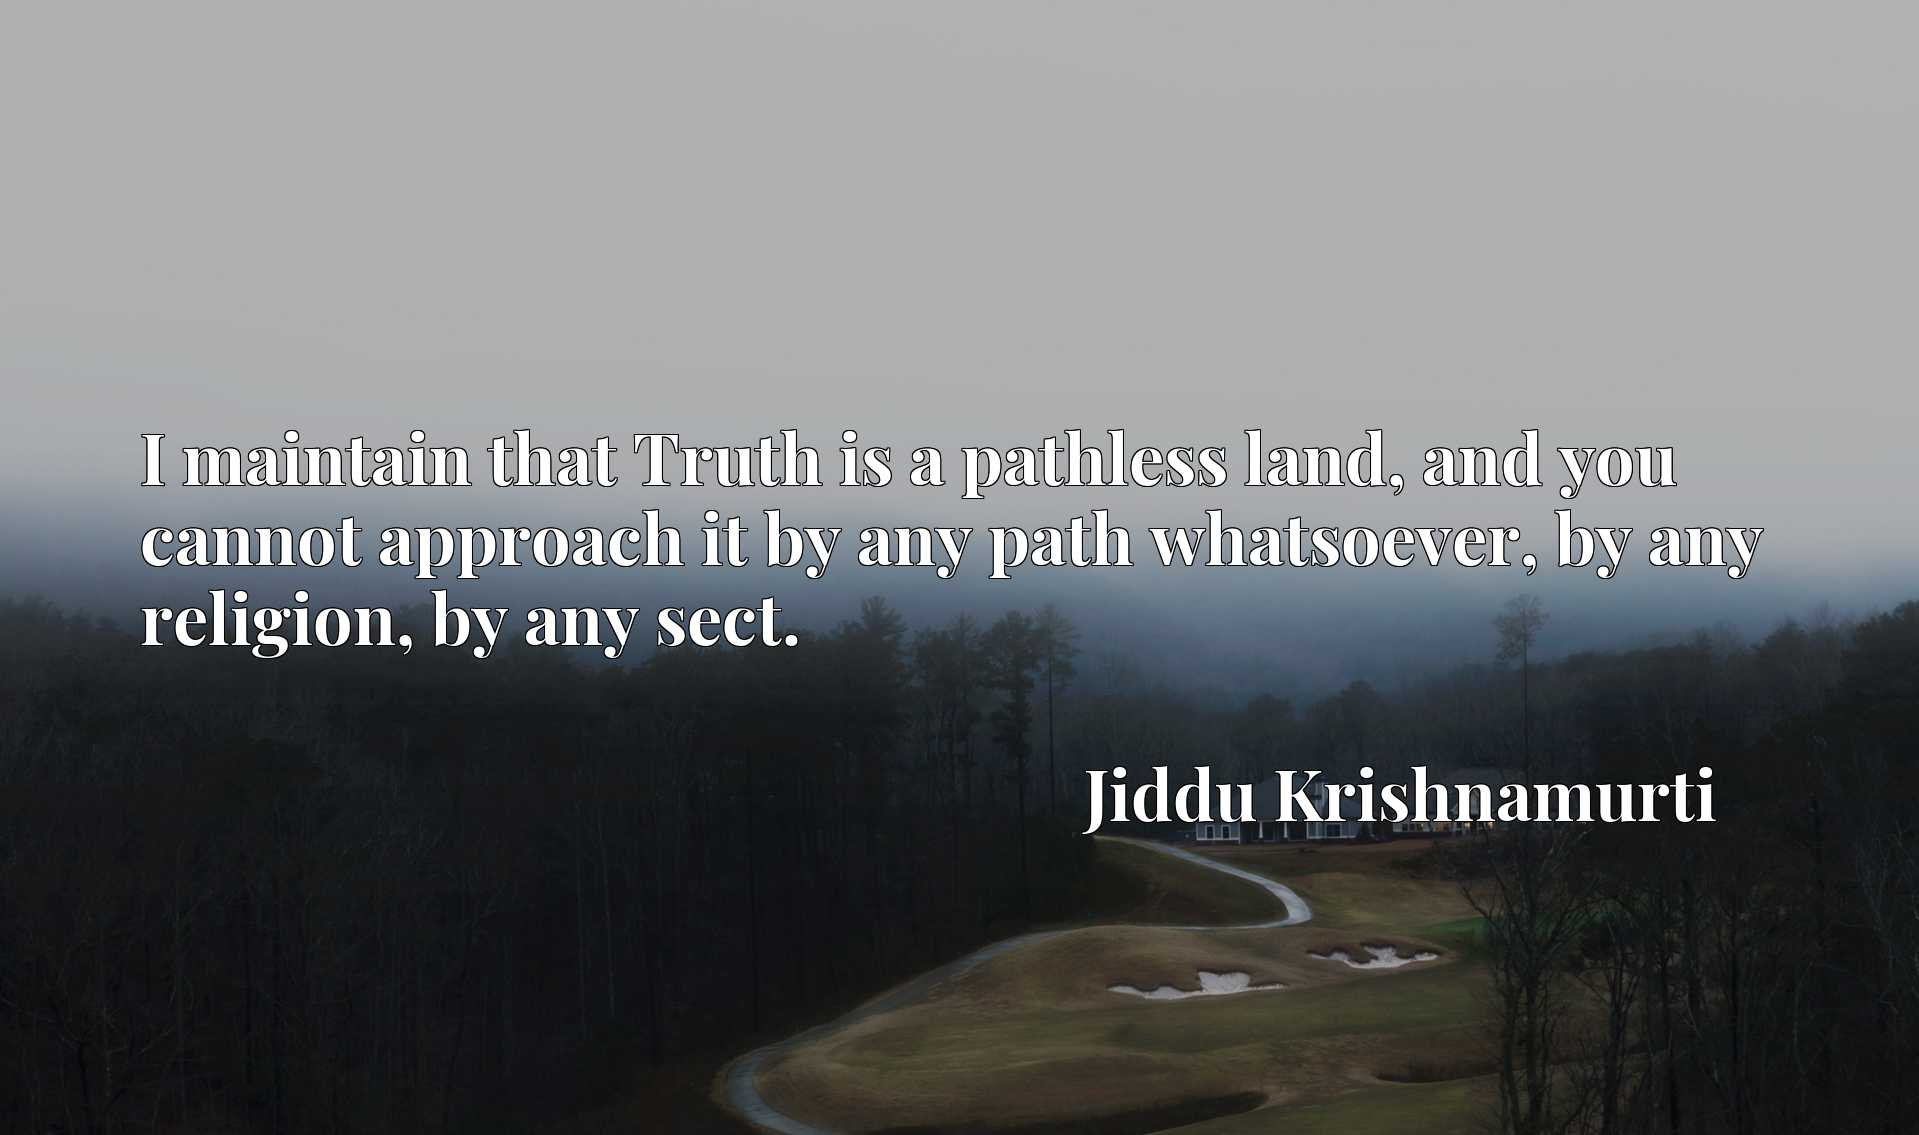 I maintain that Truth is a pathless land, and you cannot approach it by any path whatsoever, by any religion, by any sect.